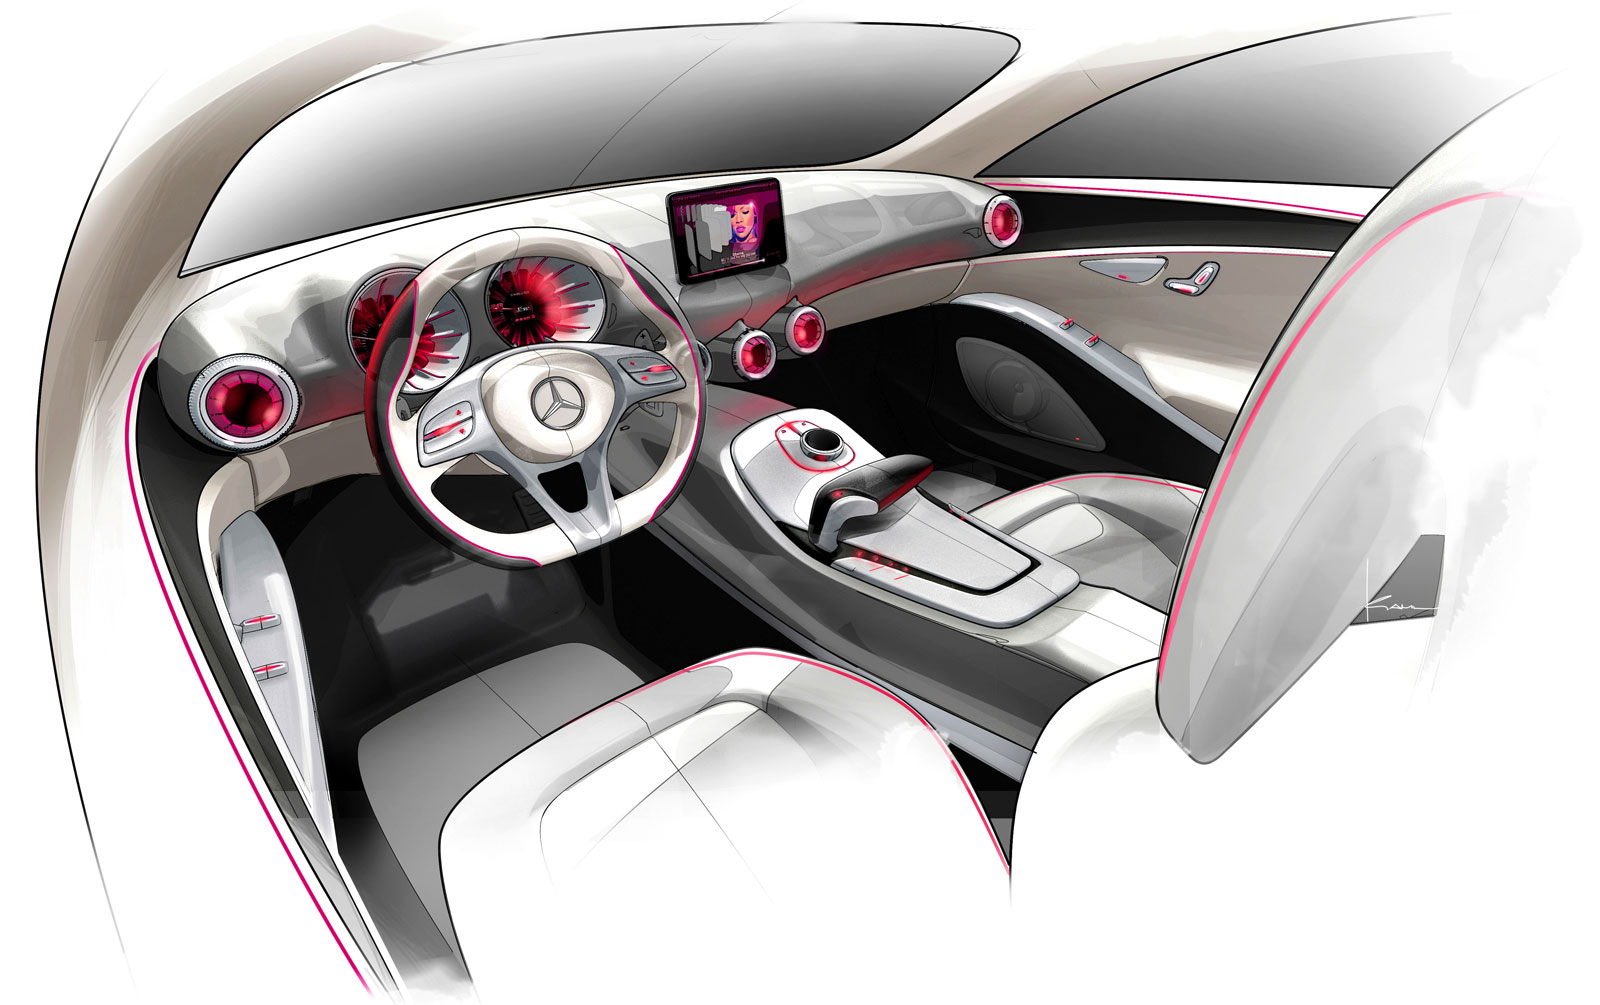 13_Mercedes-Benz-Concept-A-Class-Interior-Design-Sketch-01